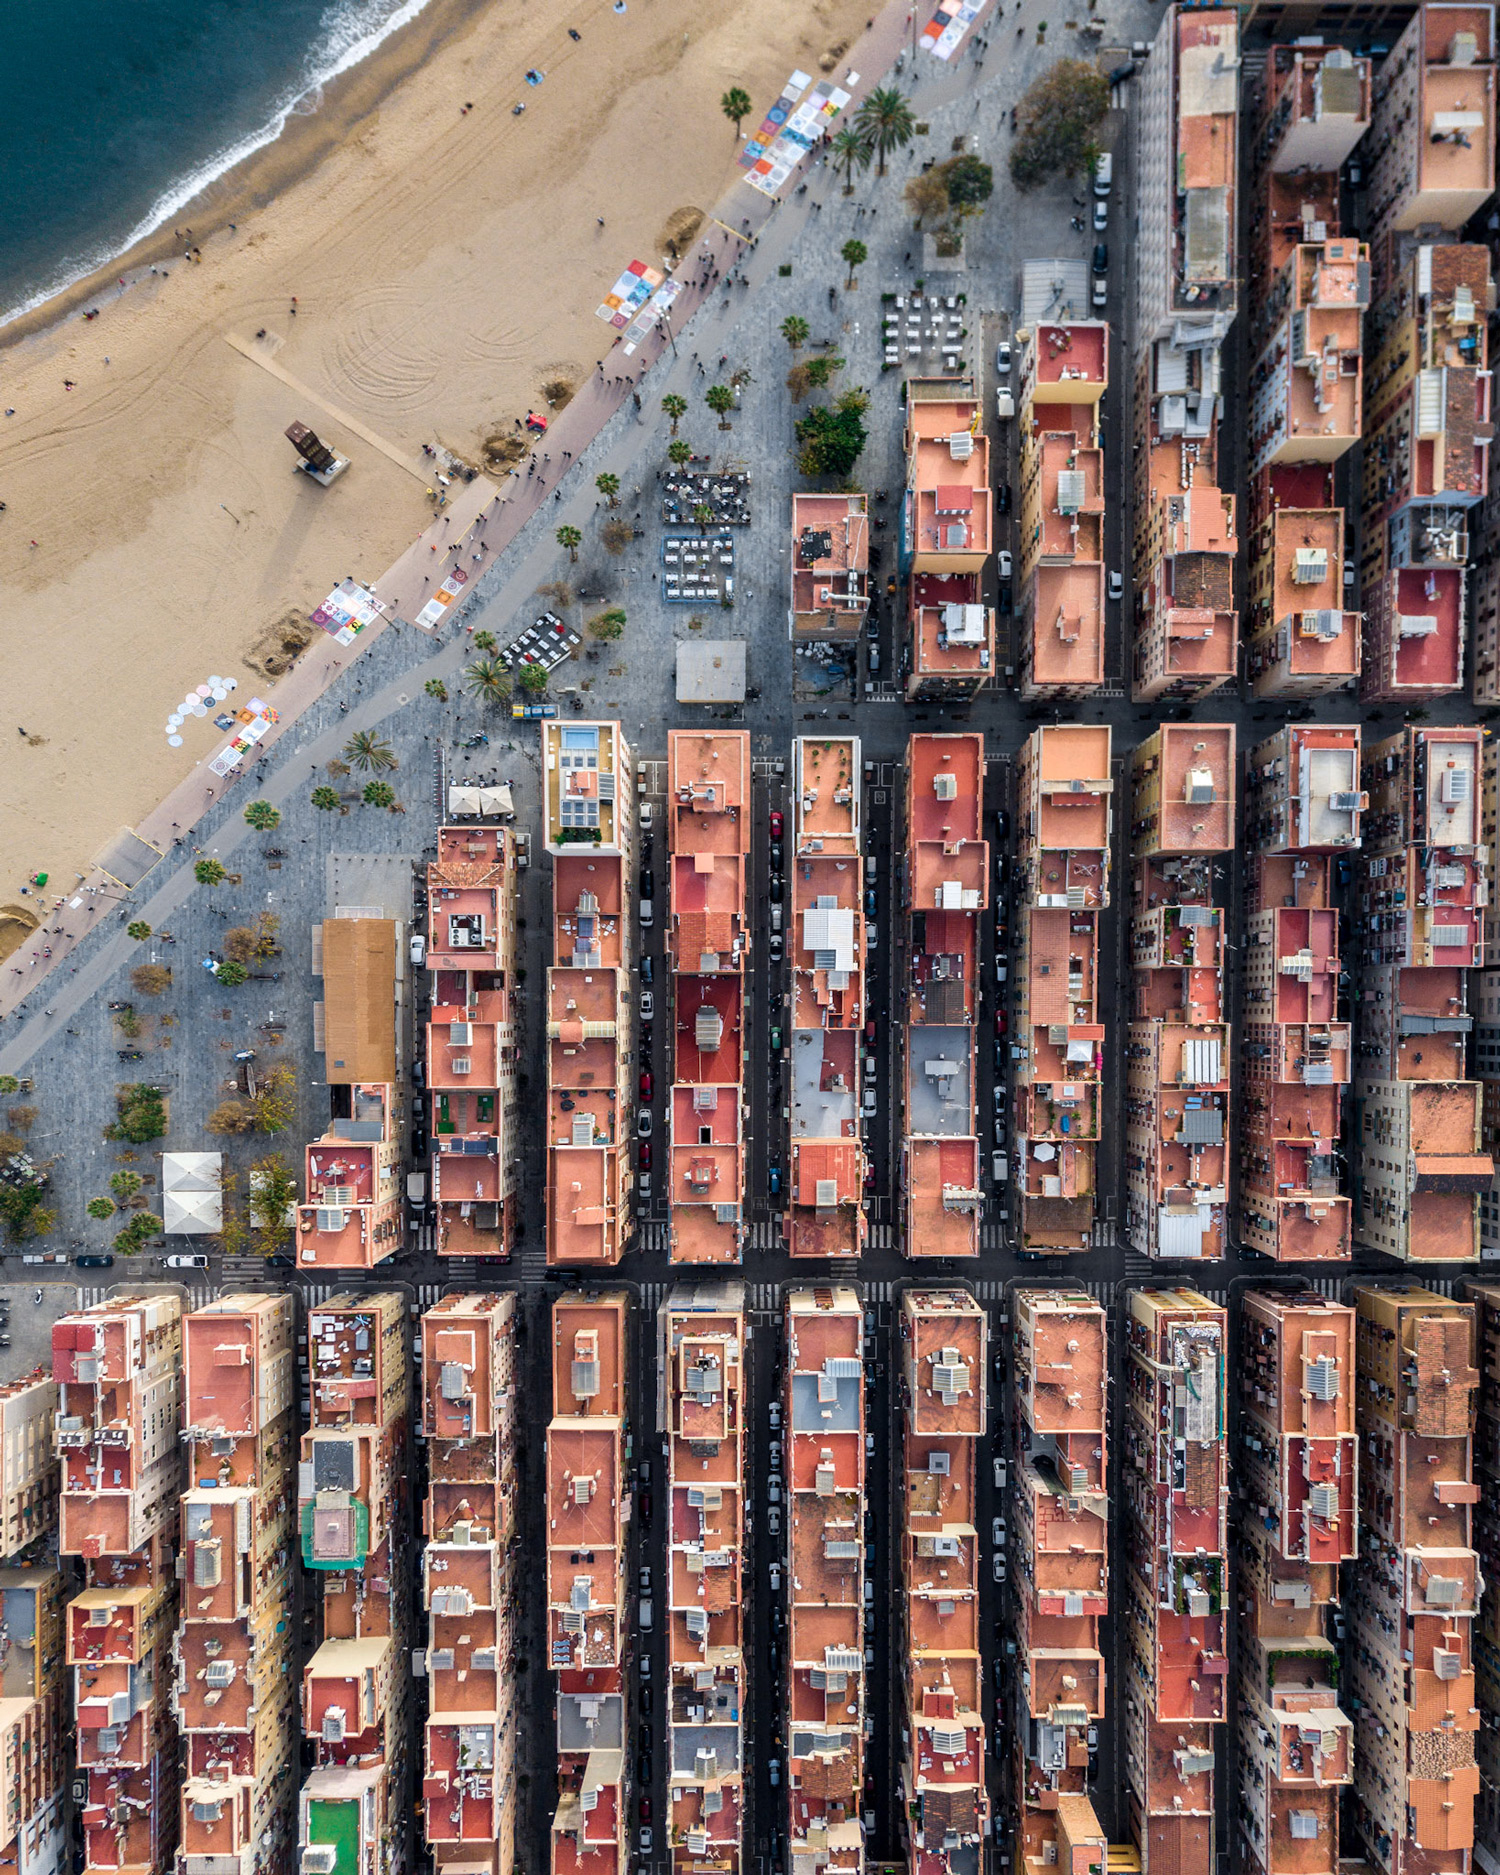 Aerial Photographs Explore the Unique Geometric Patterns of Coastal Barcelona | Colossal